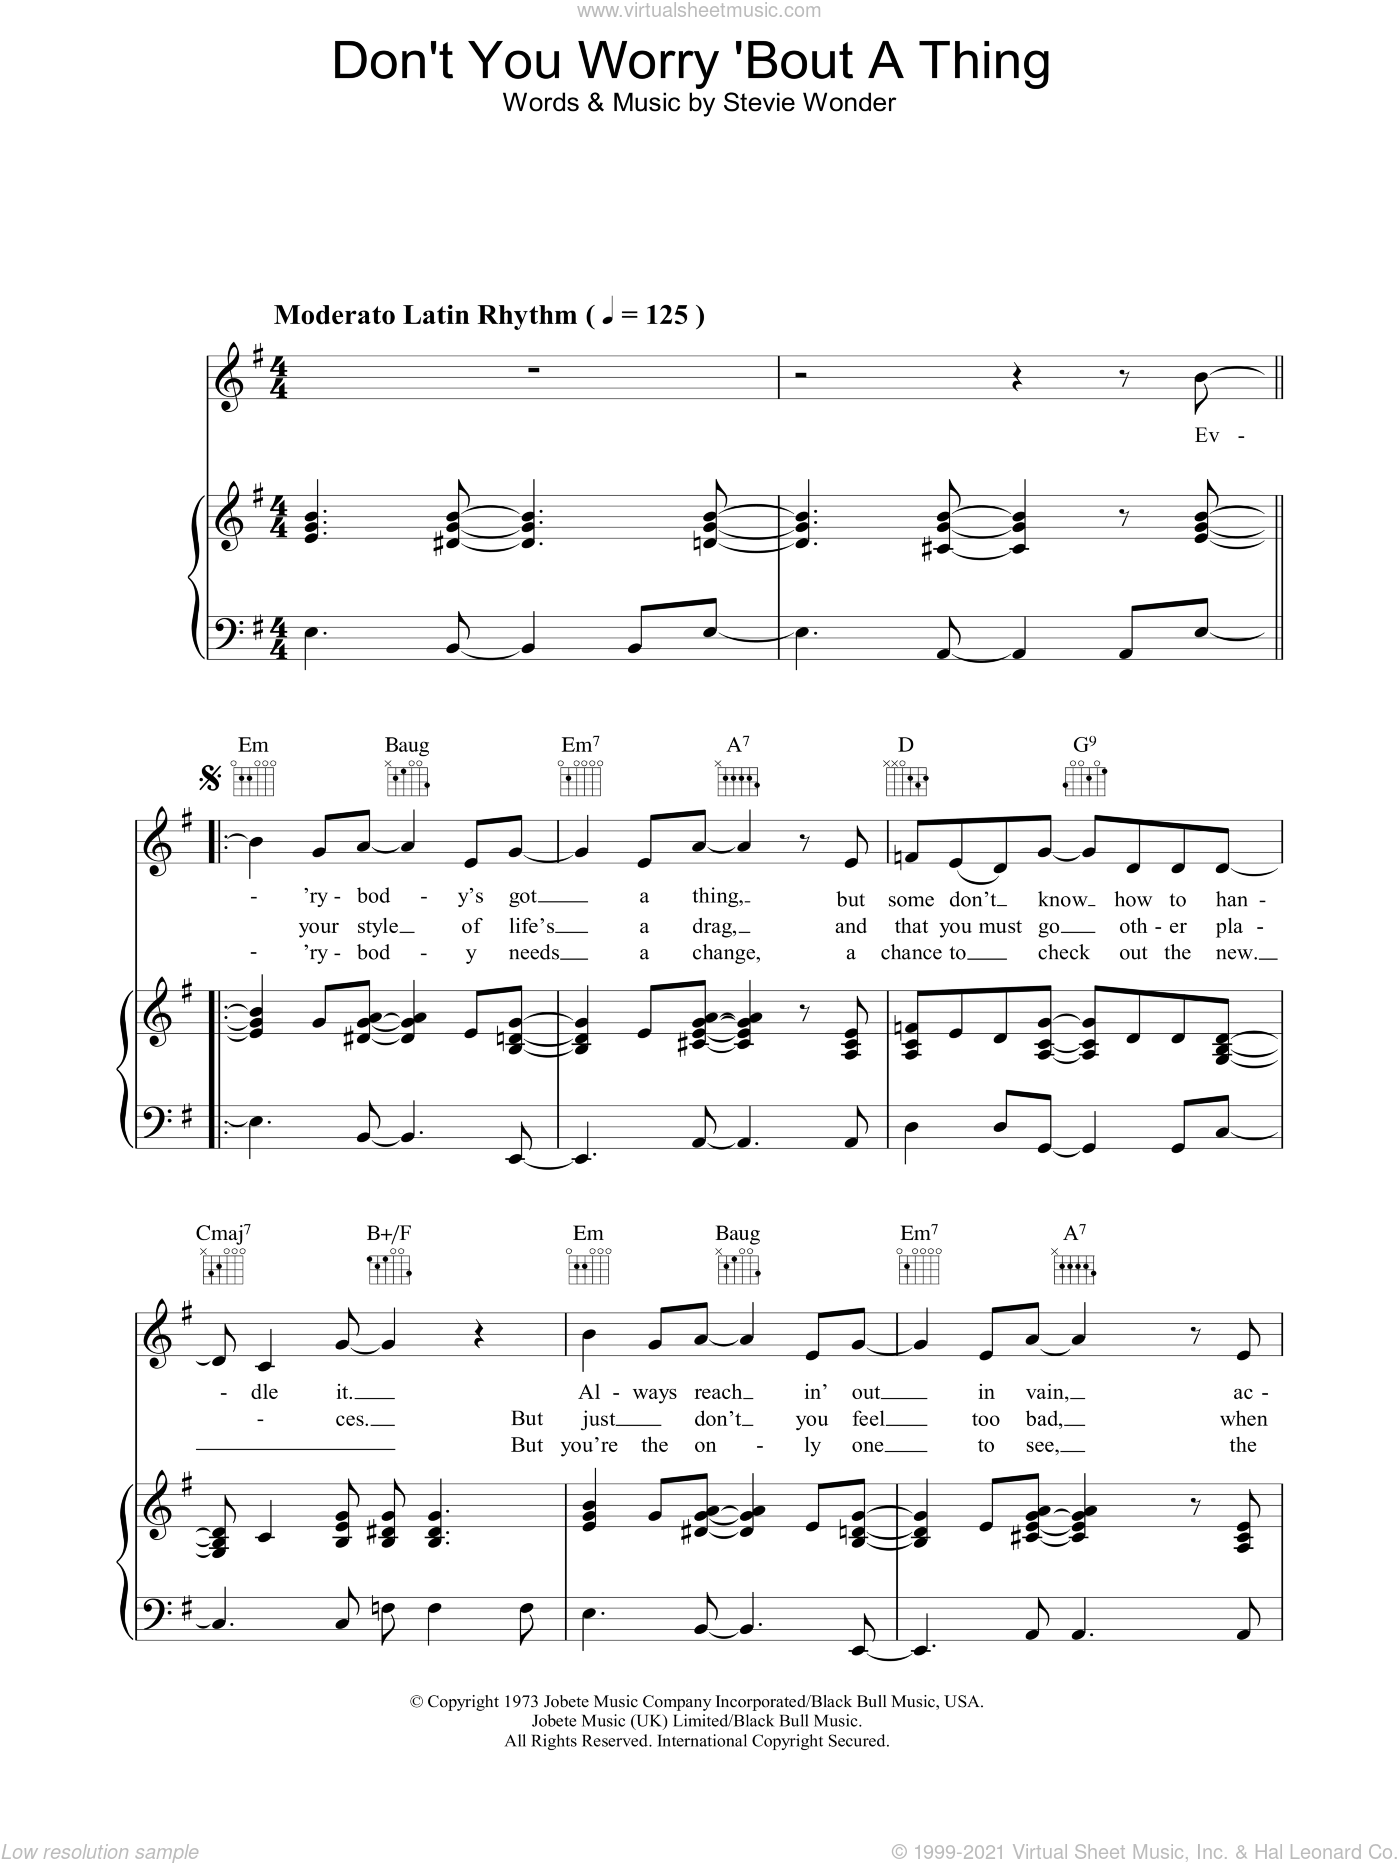 Don't You Worry 'Bout A Thing (from Sing) sheet music for voice, piano or guitar by Stevie Wonder, intermediate skill level